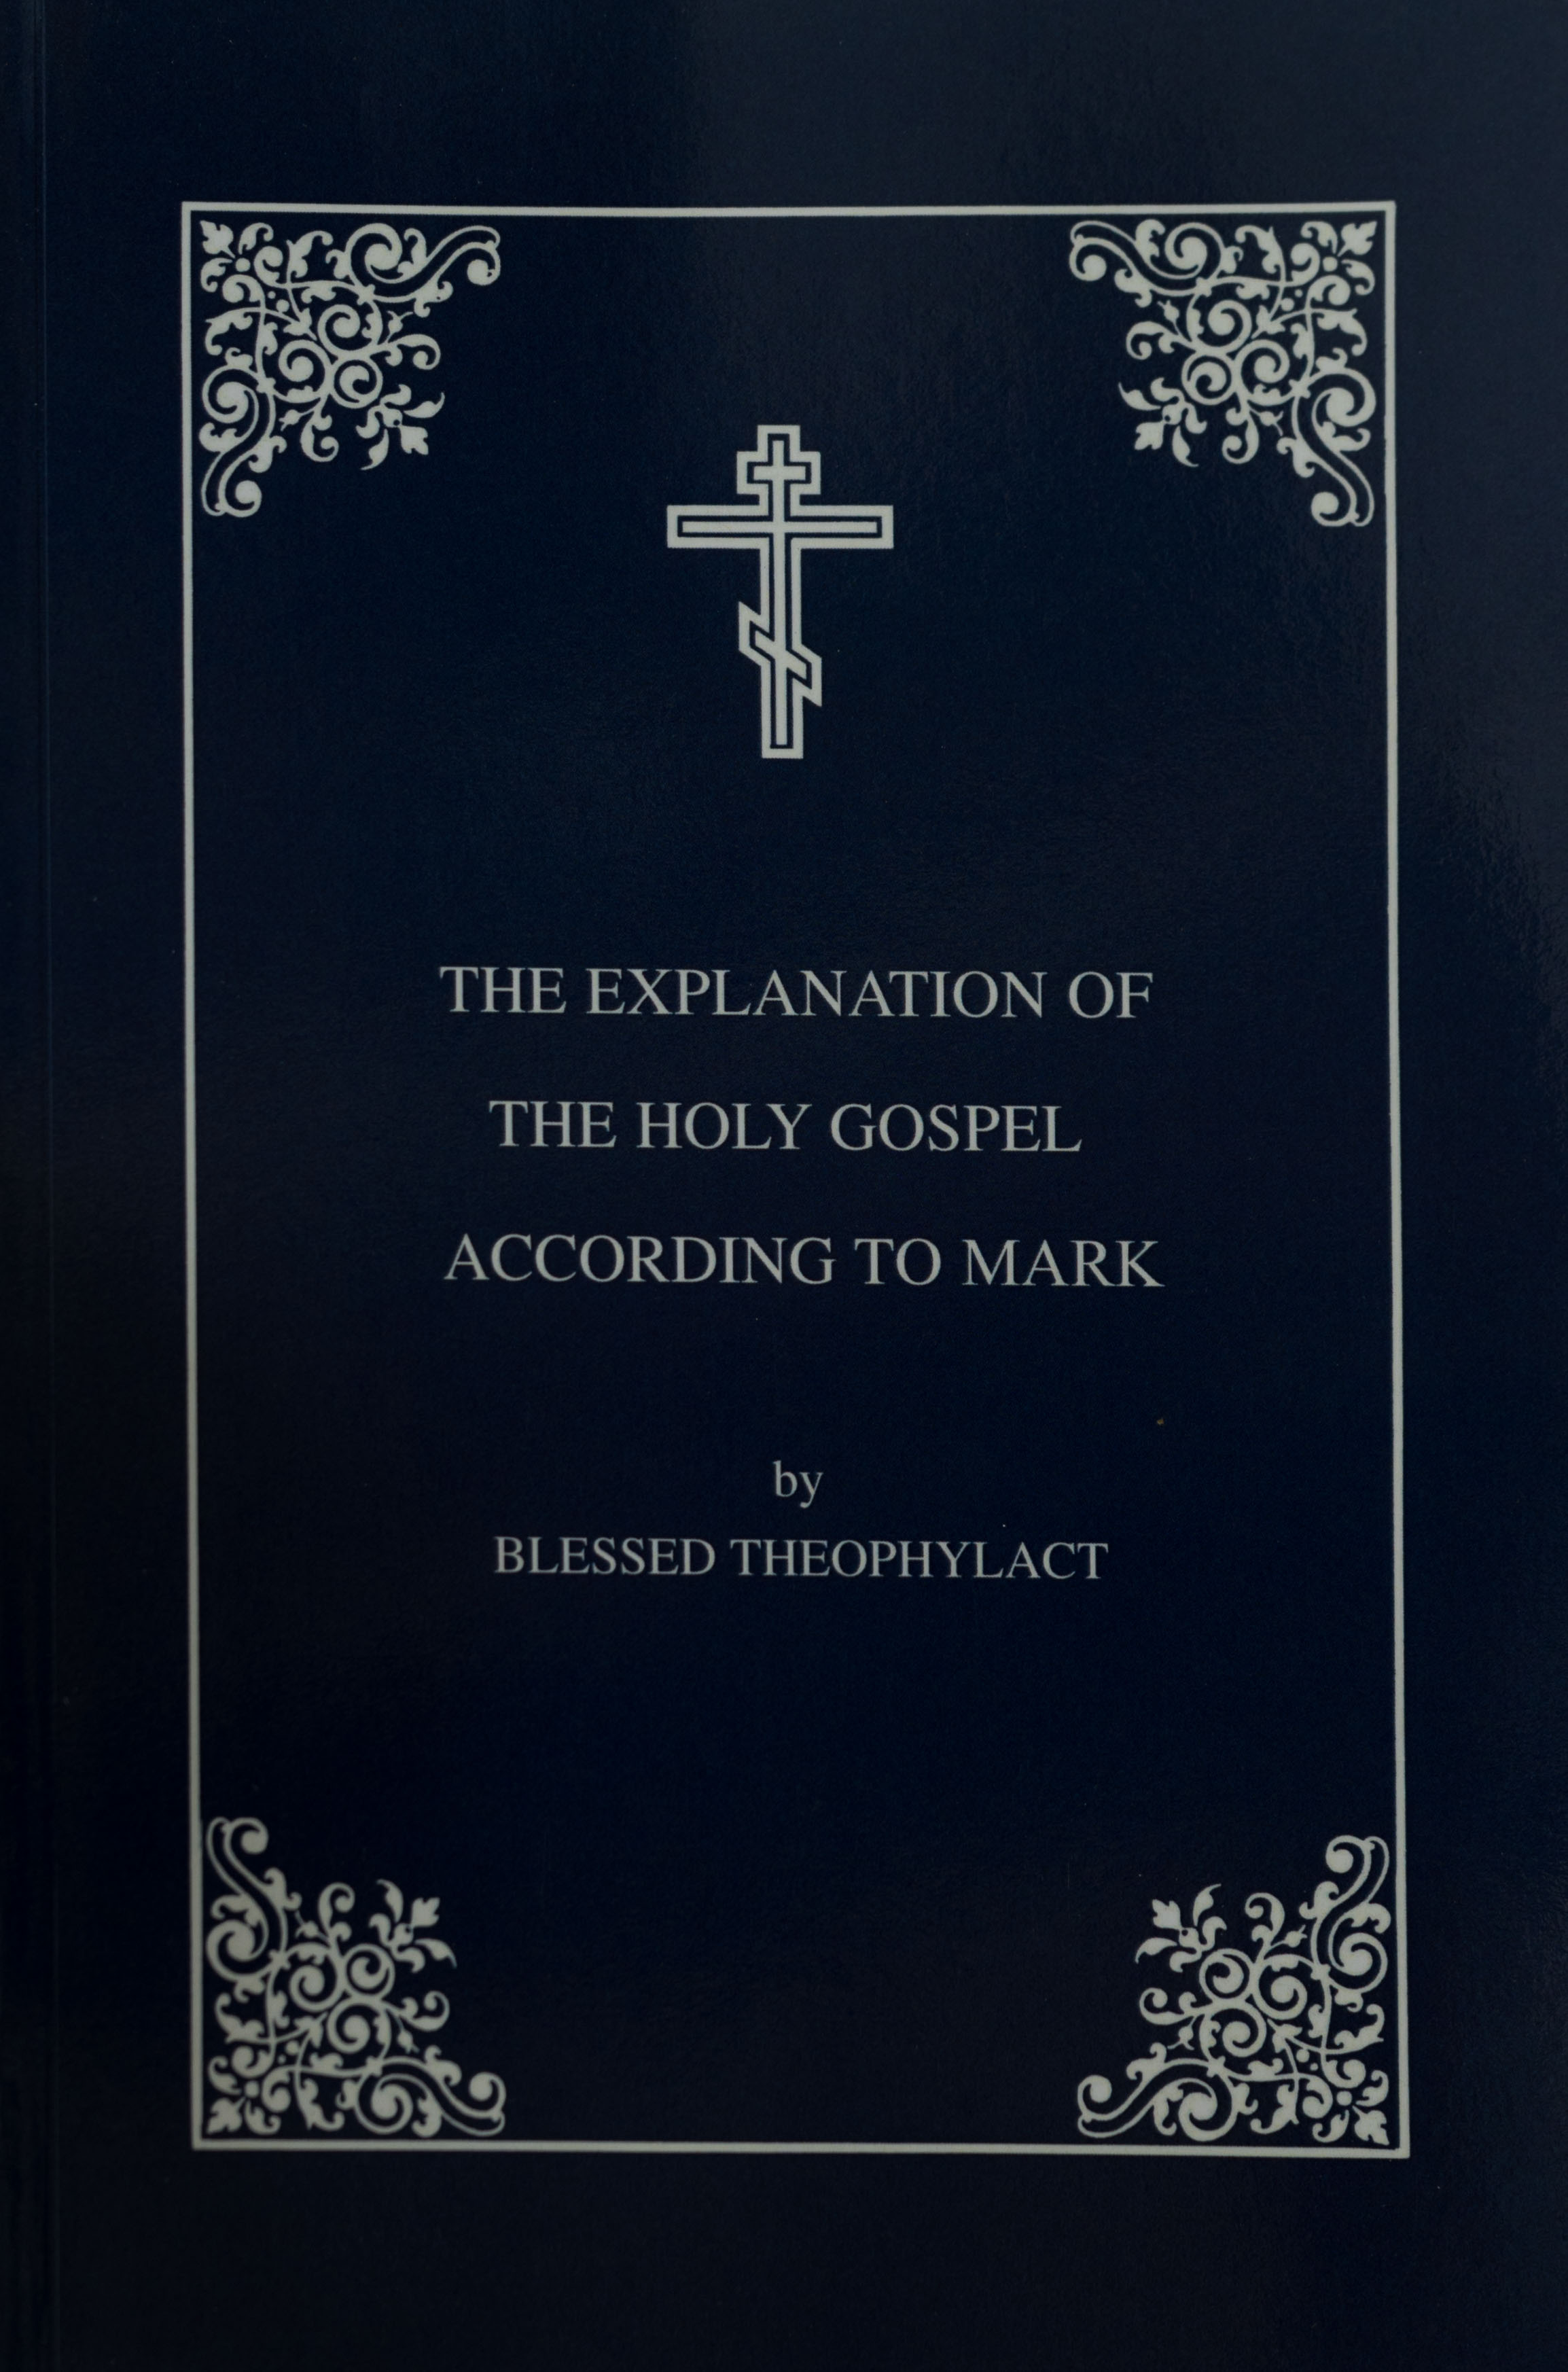 The Explanation by Blessed Theophylact of The Holy Gospel According to St Mark